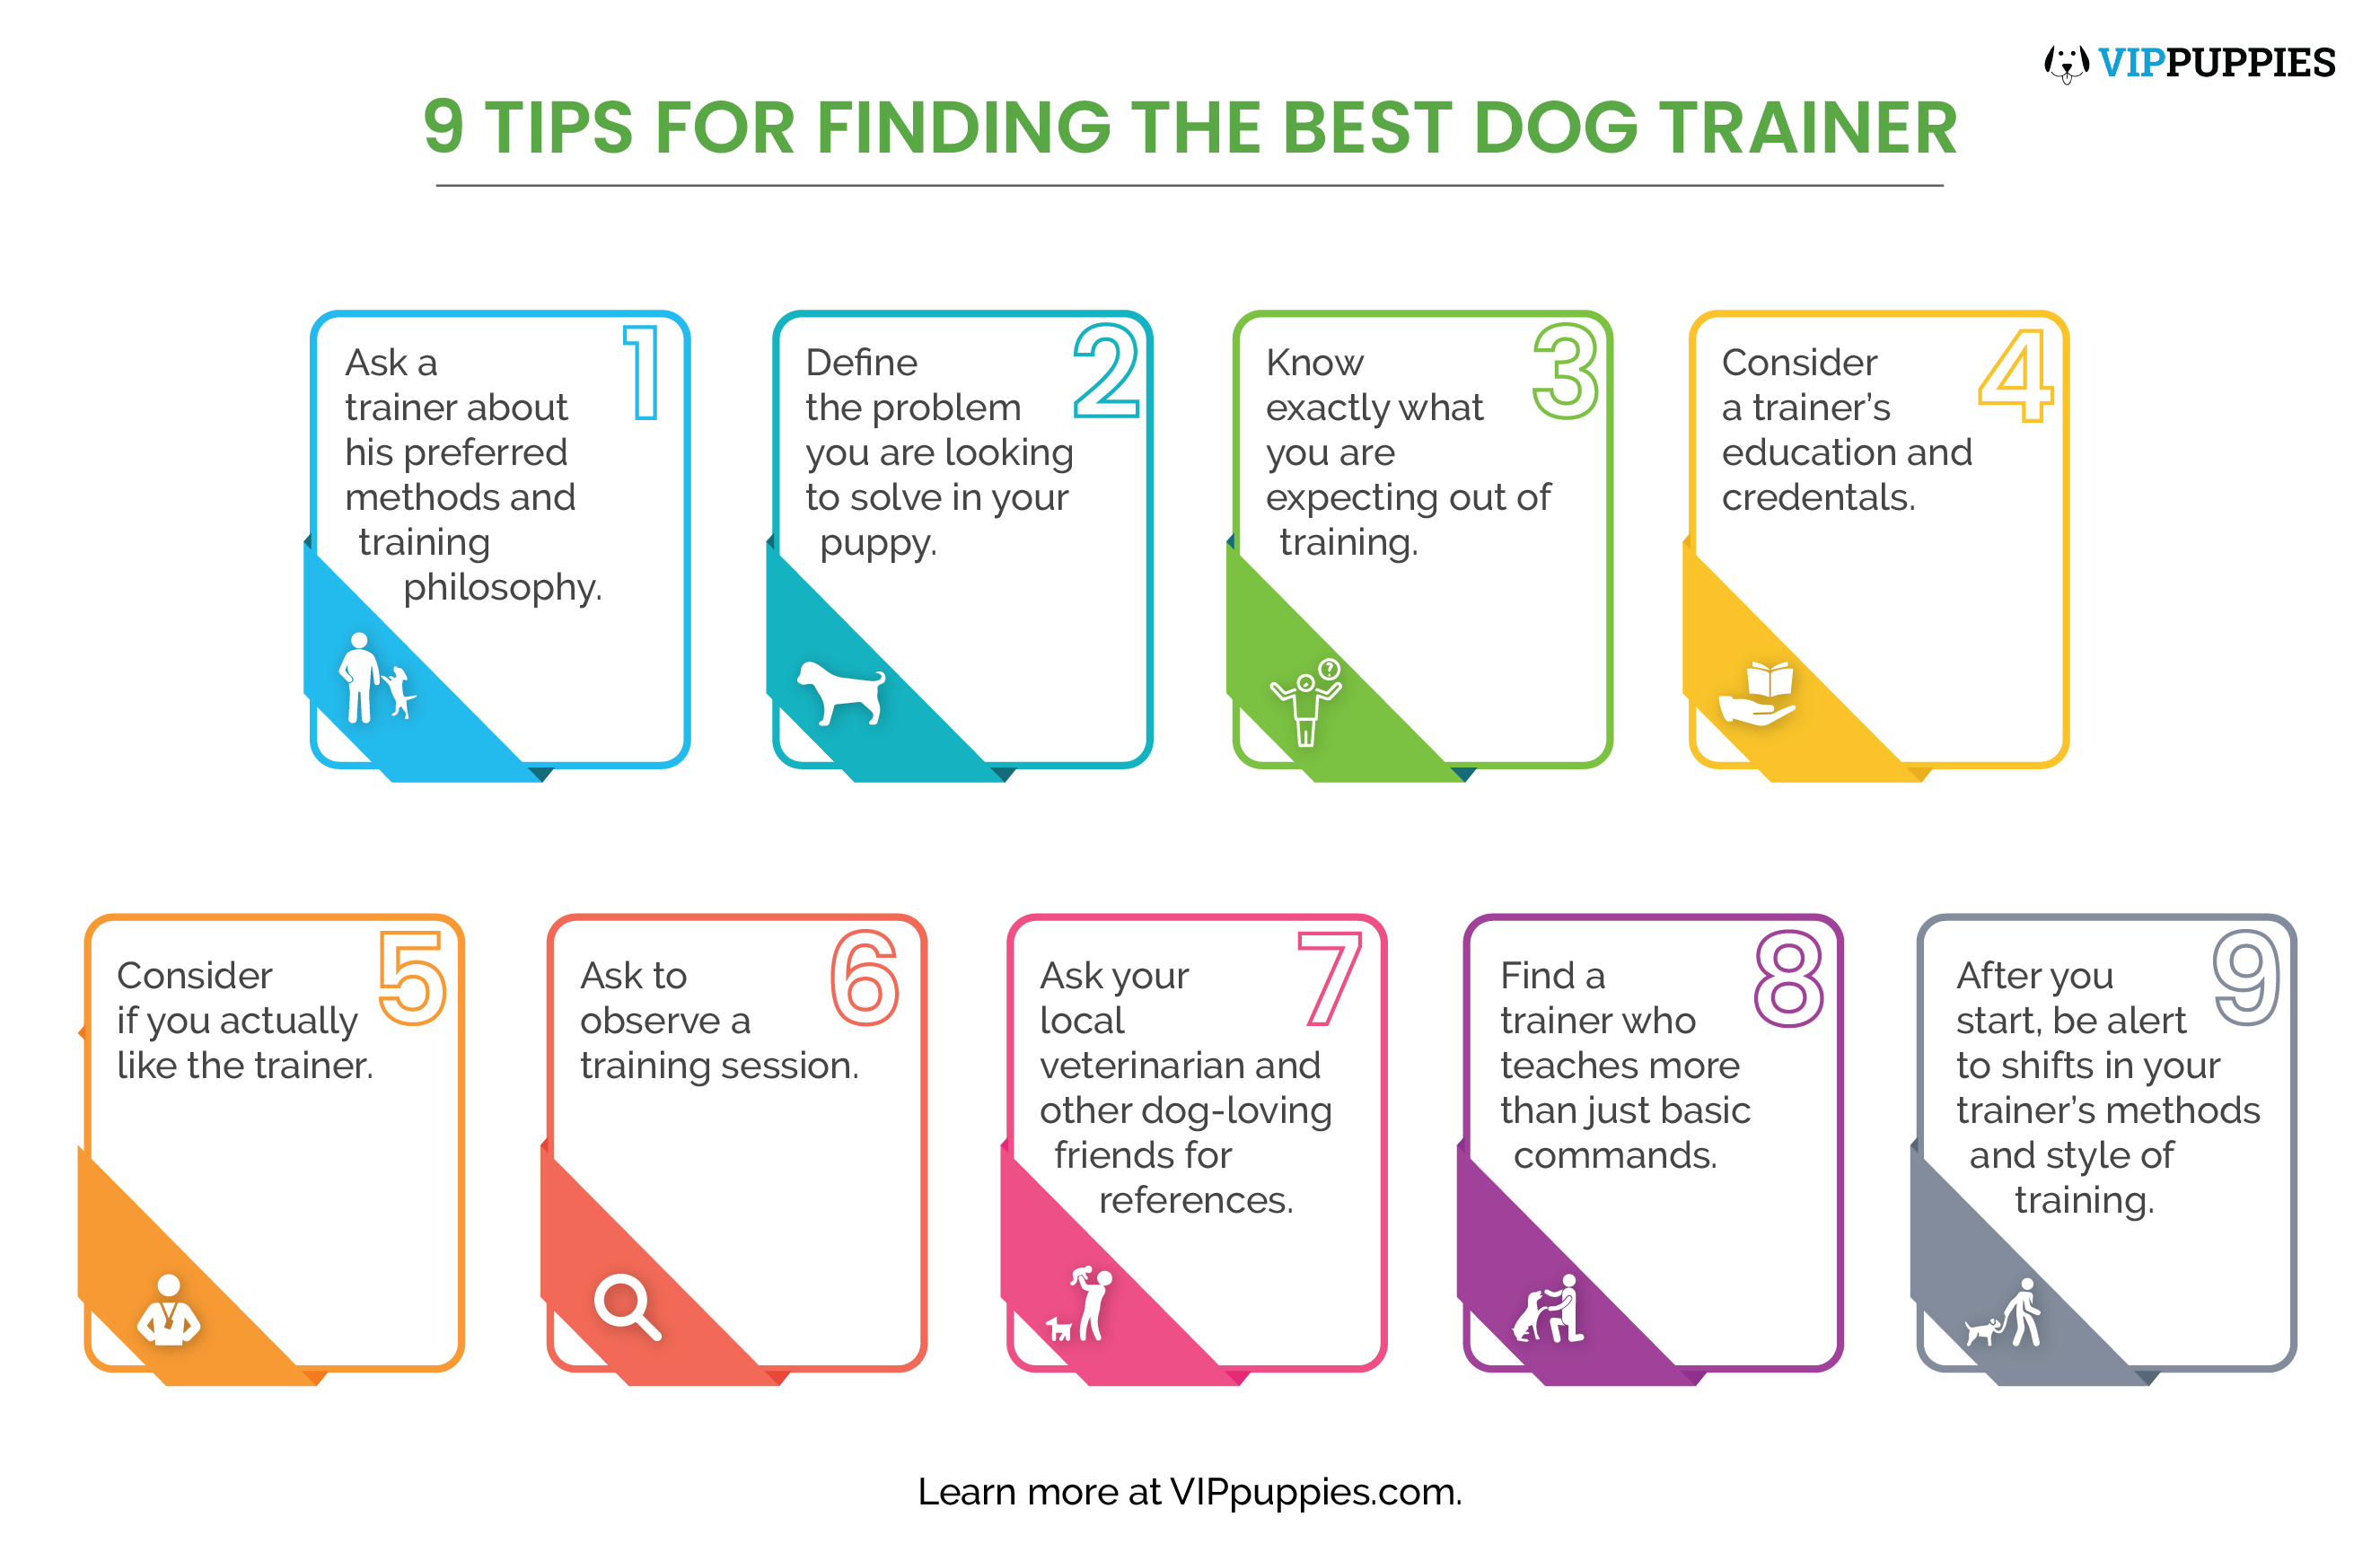 9 tips for finding the best dog trainer infographic.